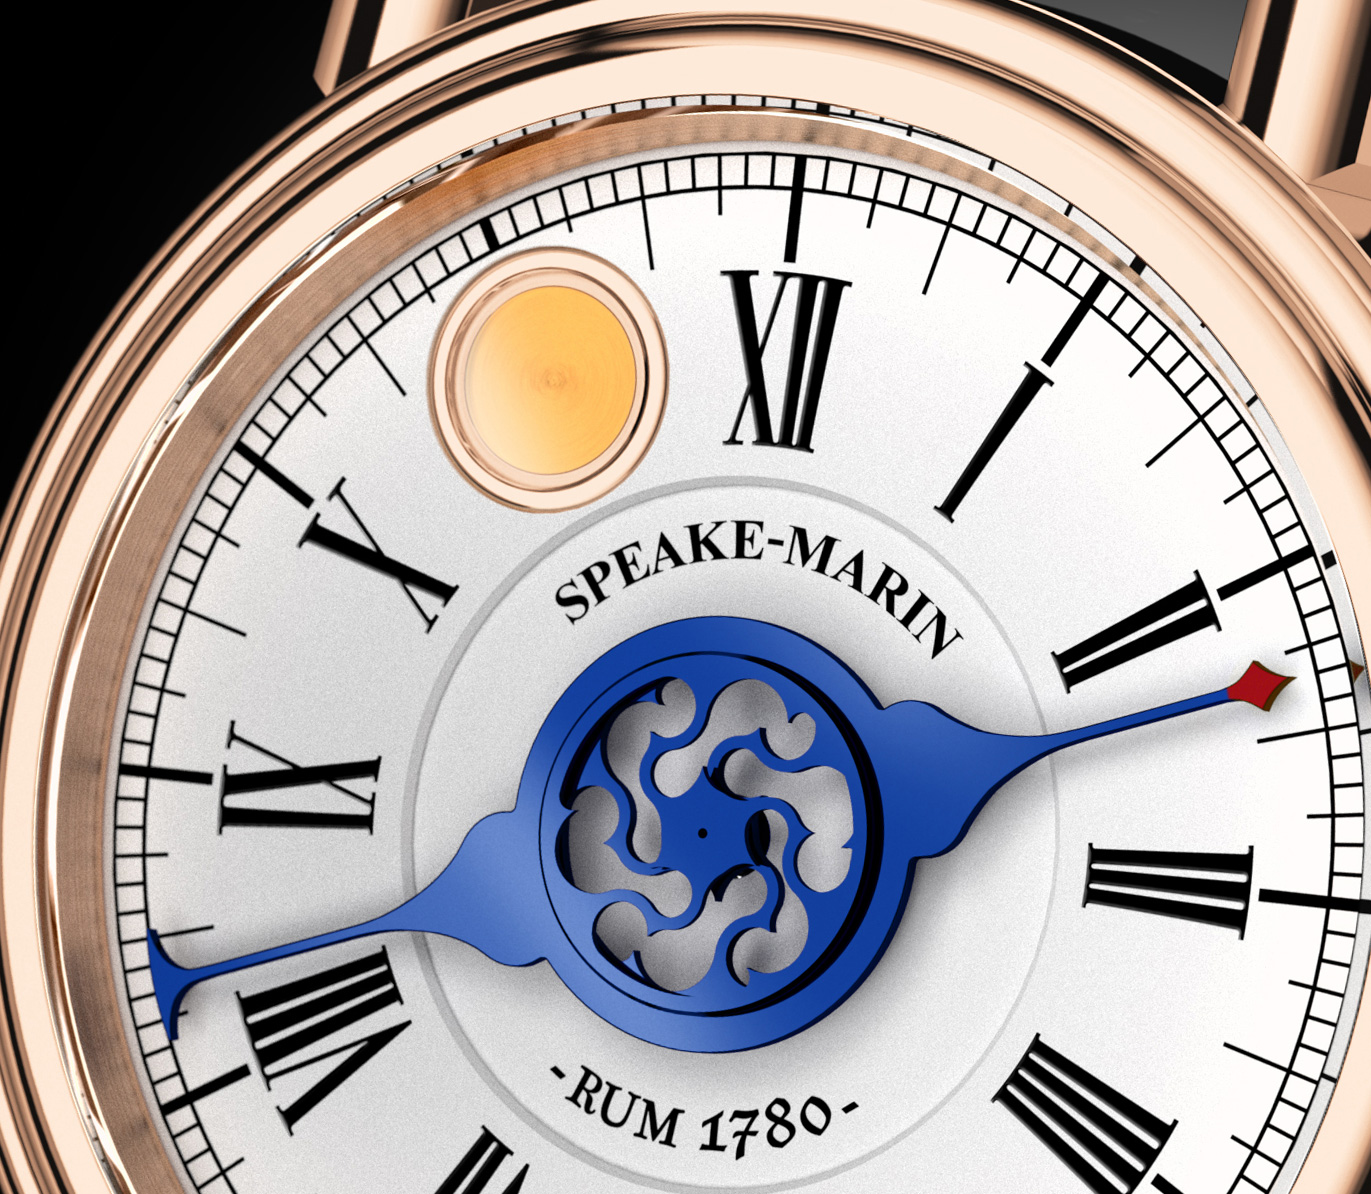 Speake-Marin Rum Watch 4